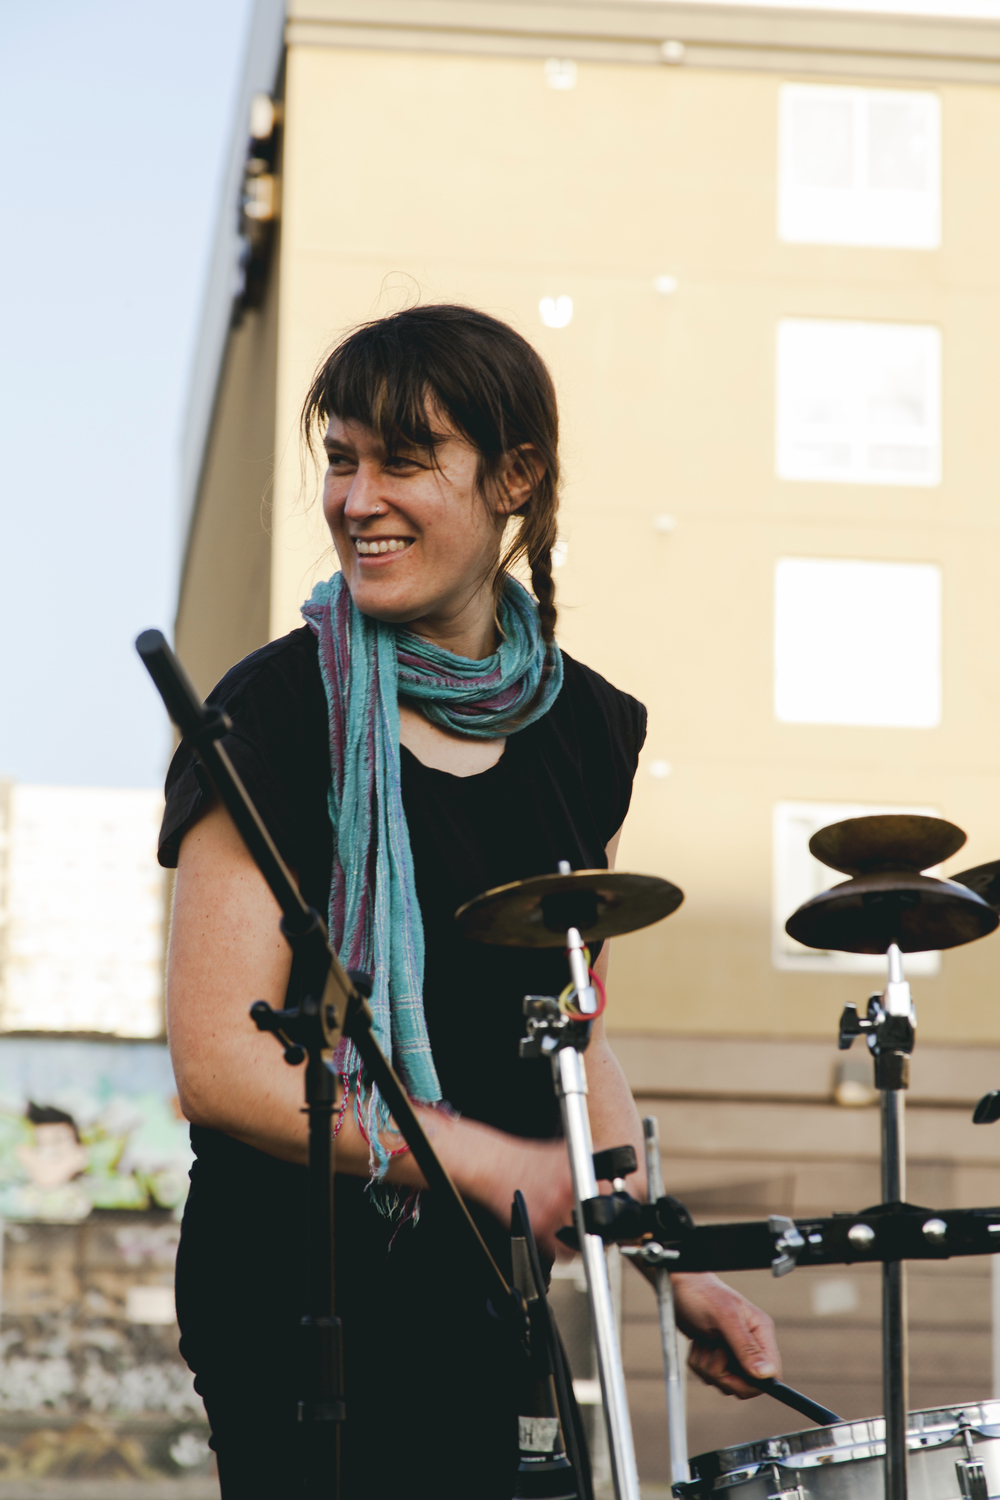 Musician, artist and natural historian, Lisa Schonberg plays for ALL RISE